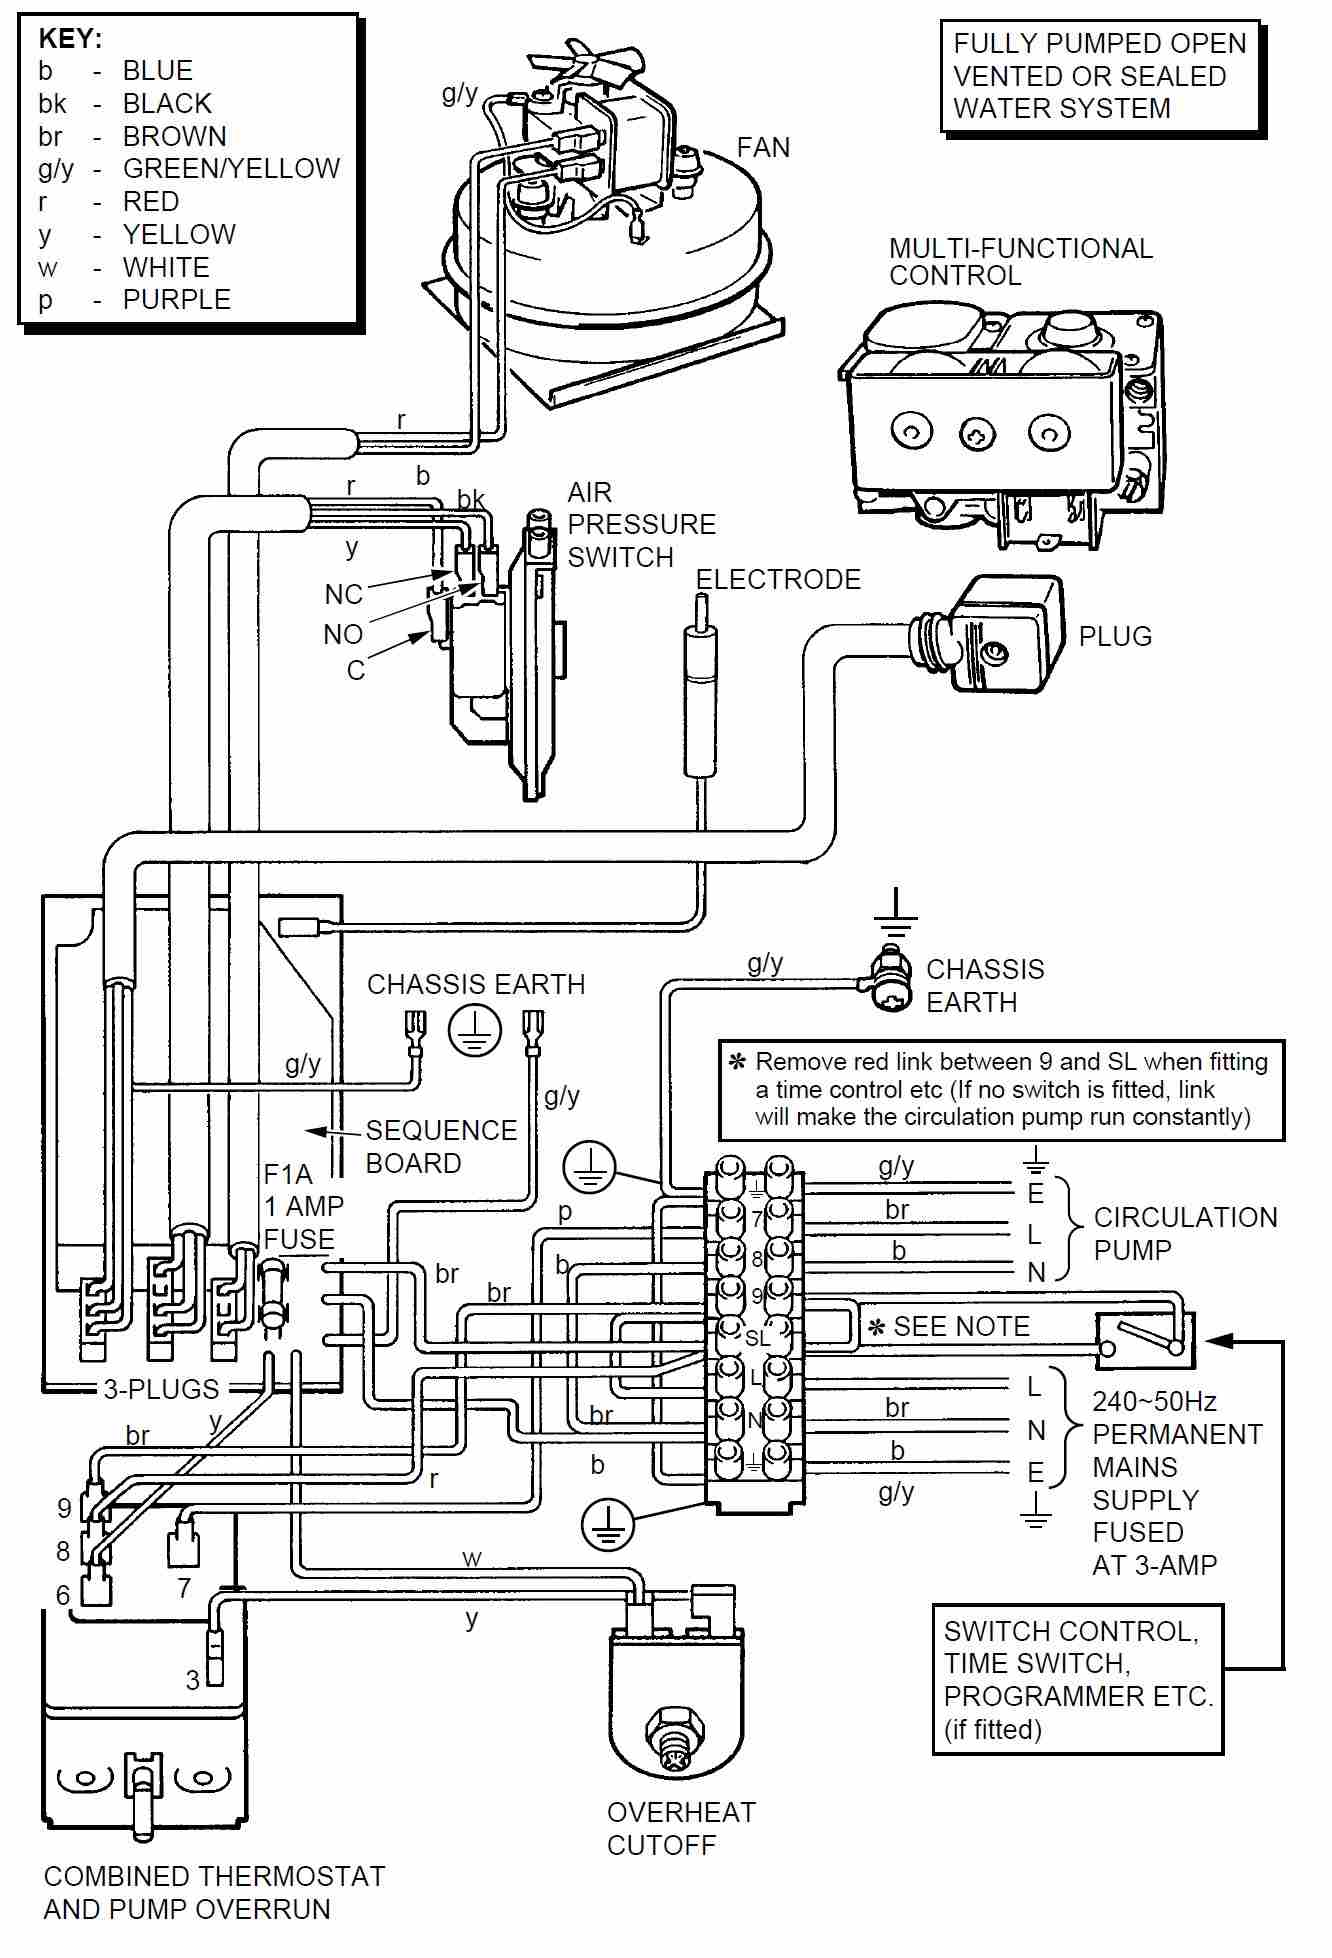 4 ask glow worm s plan wiring diagram with pump overrun at gsmx.co